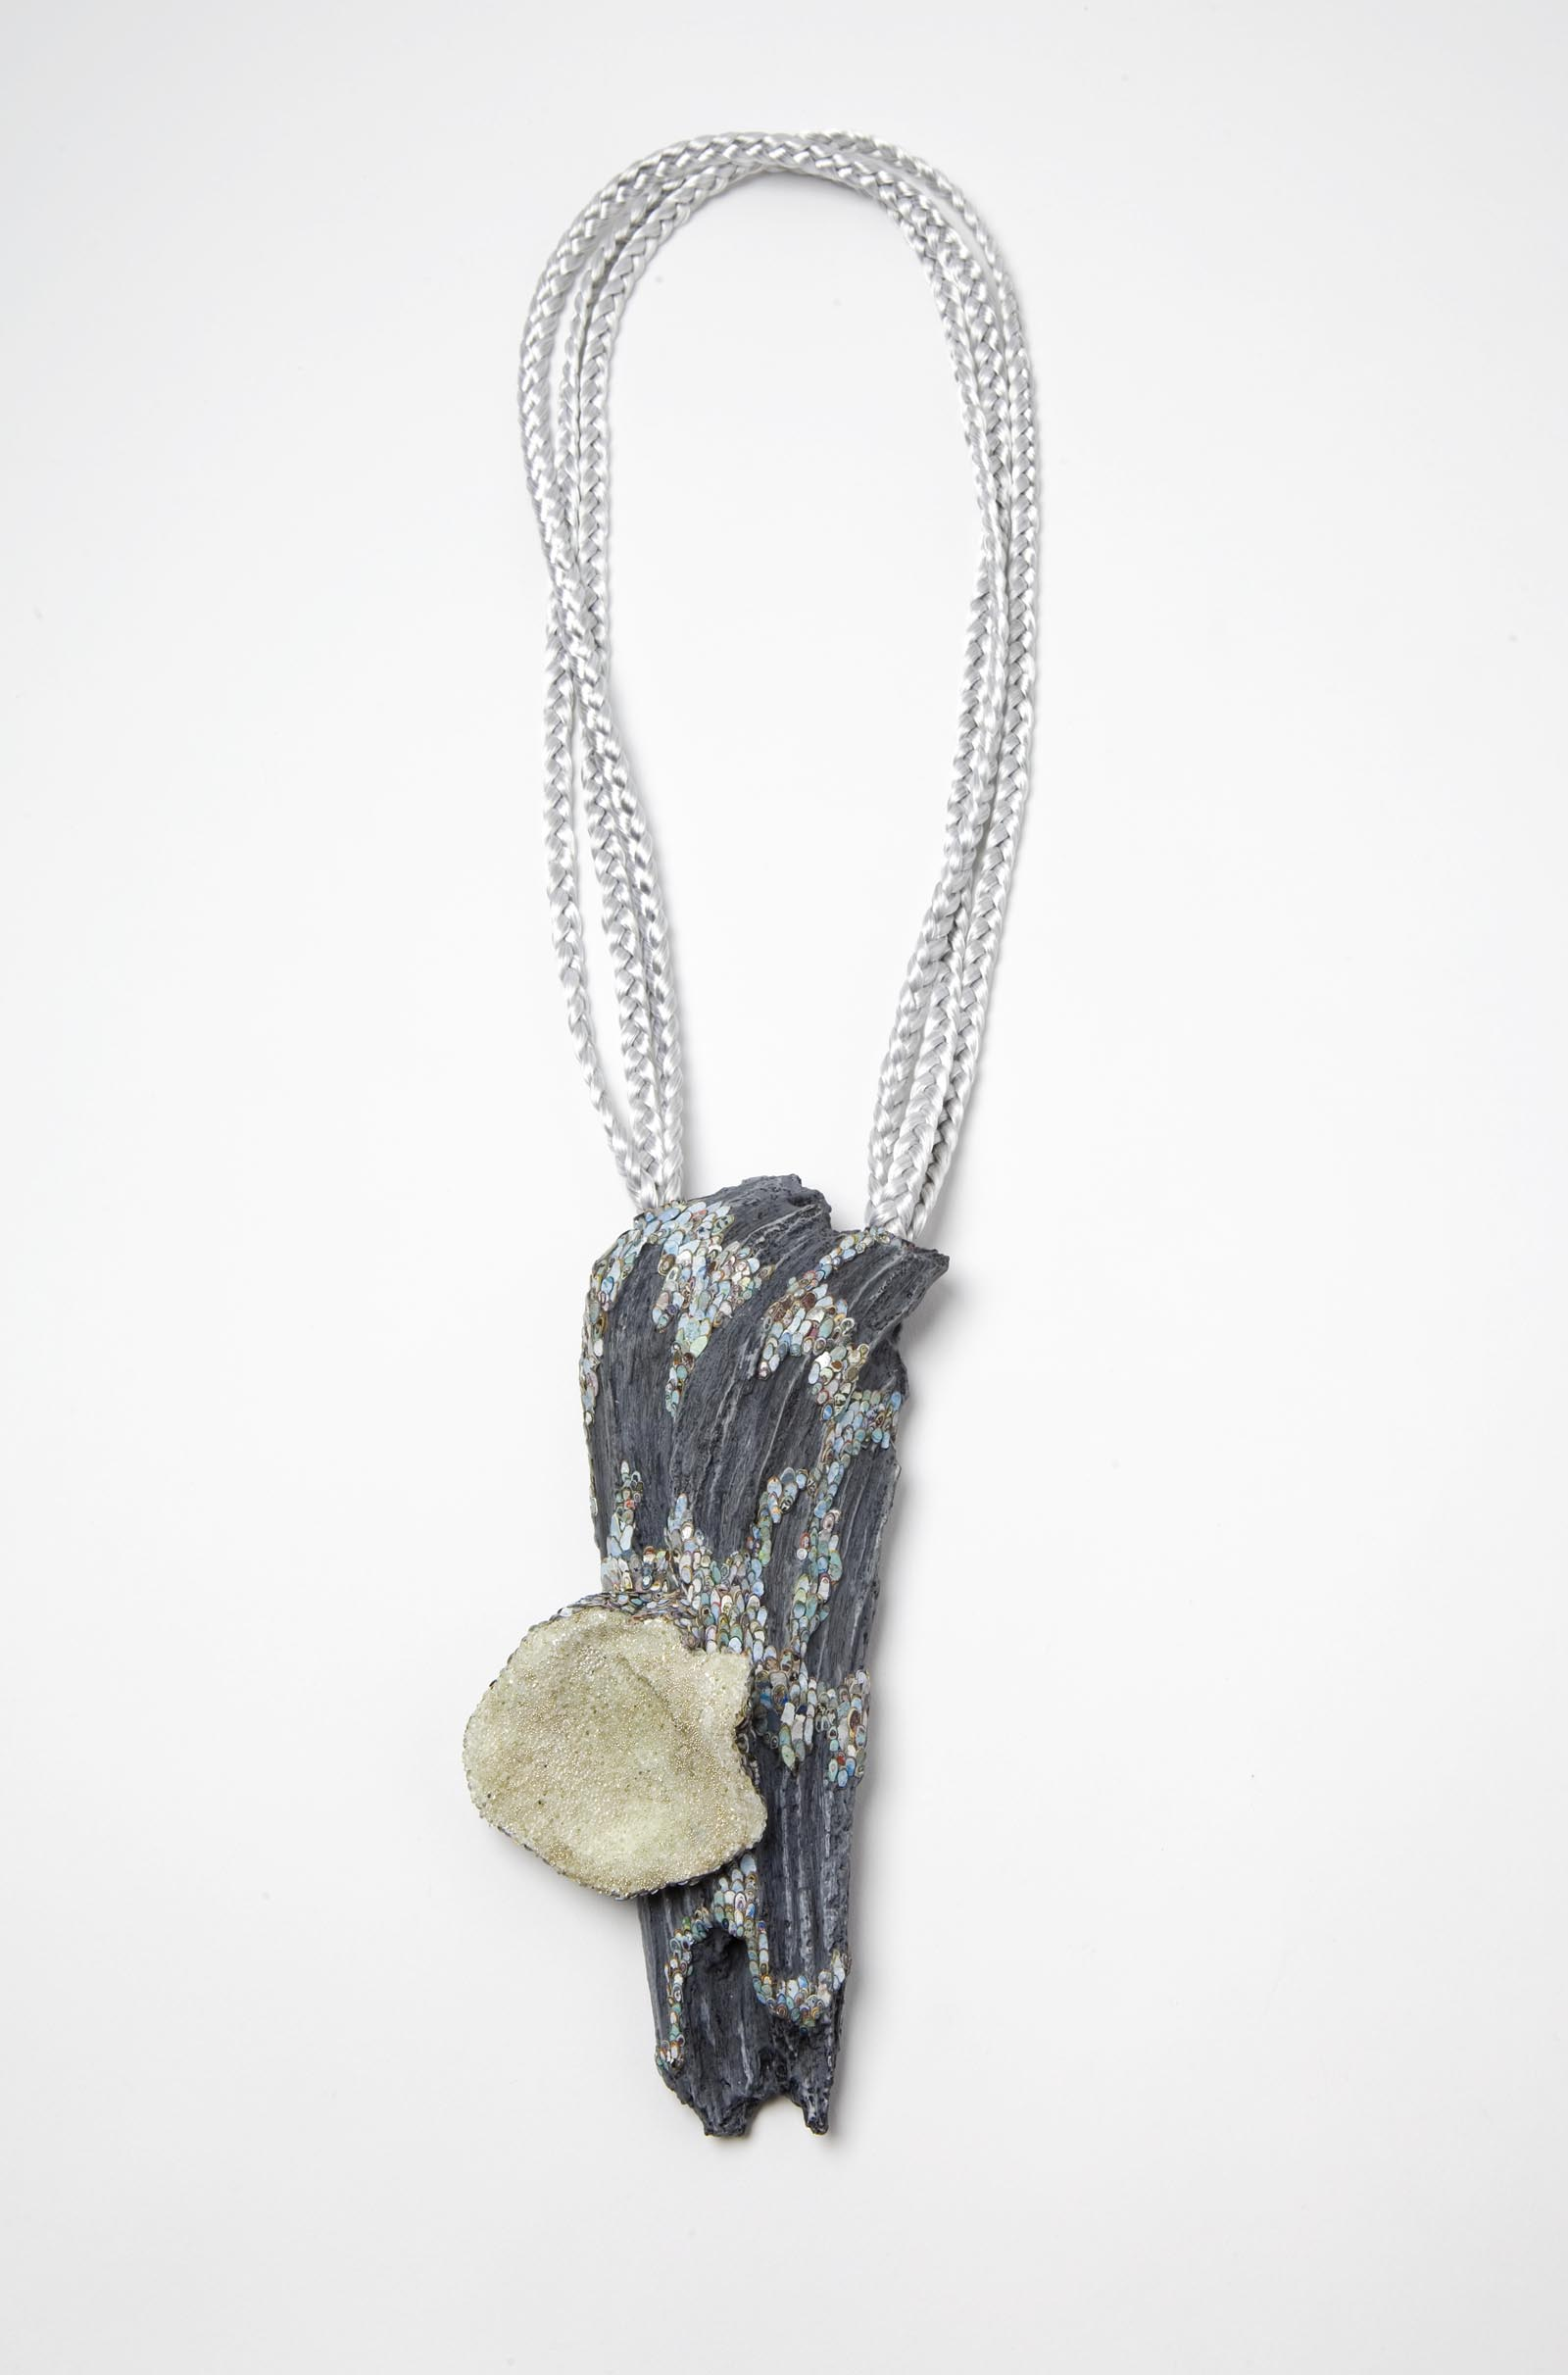 """Shine Not Burn"" I Necklace, 2014 I Wood, graffiti, oyster shell, glass, silver, string, paint I Photo: Mirei Takeuchi"